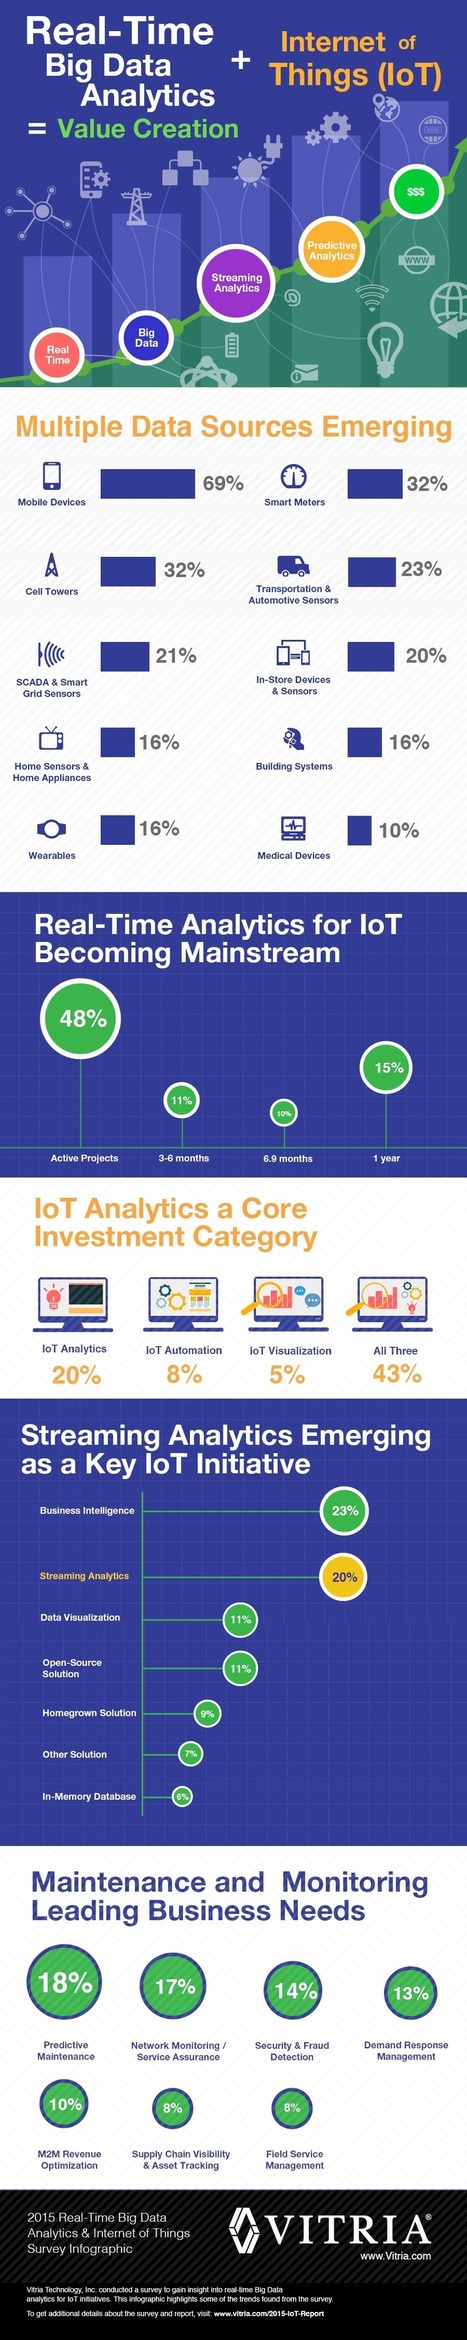 Big Data Analytics and the Internet of Things  (Infographic) | SAS Analytics | Scoop.it